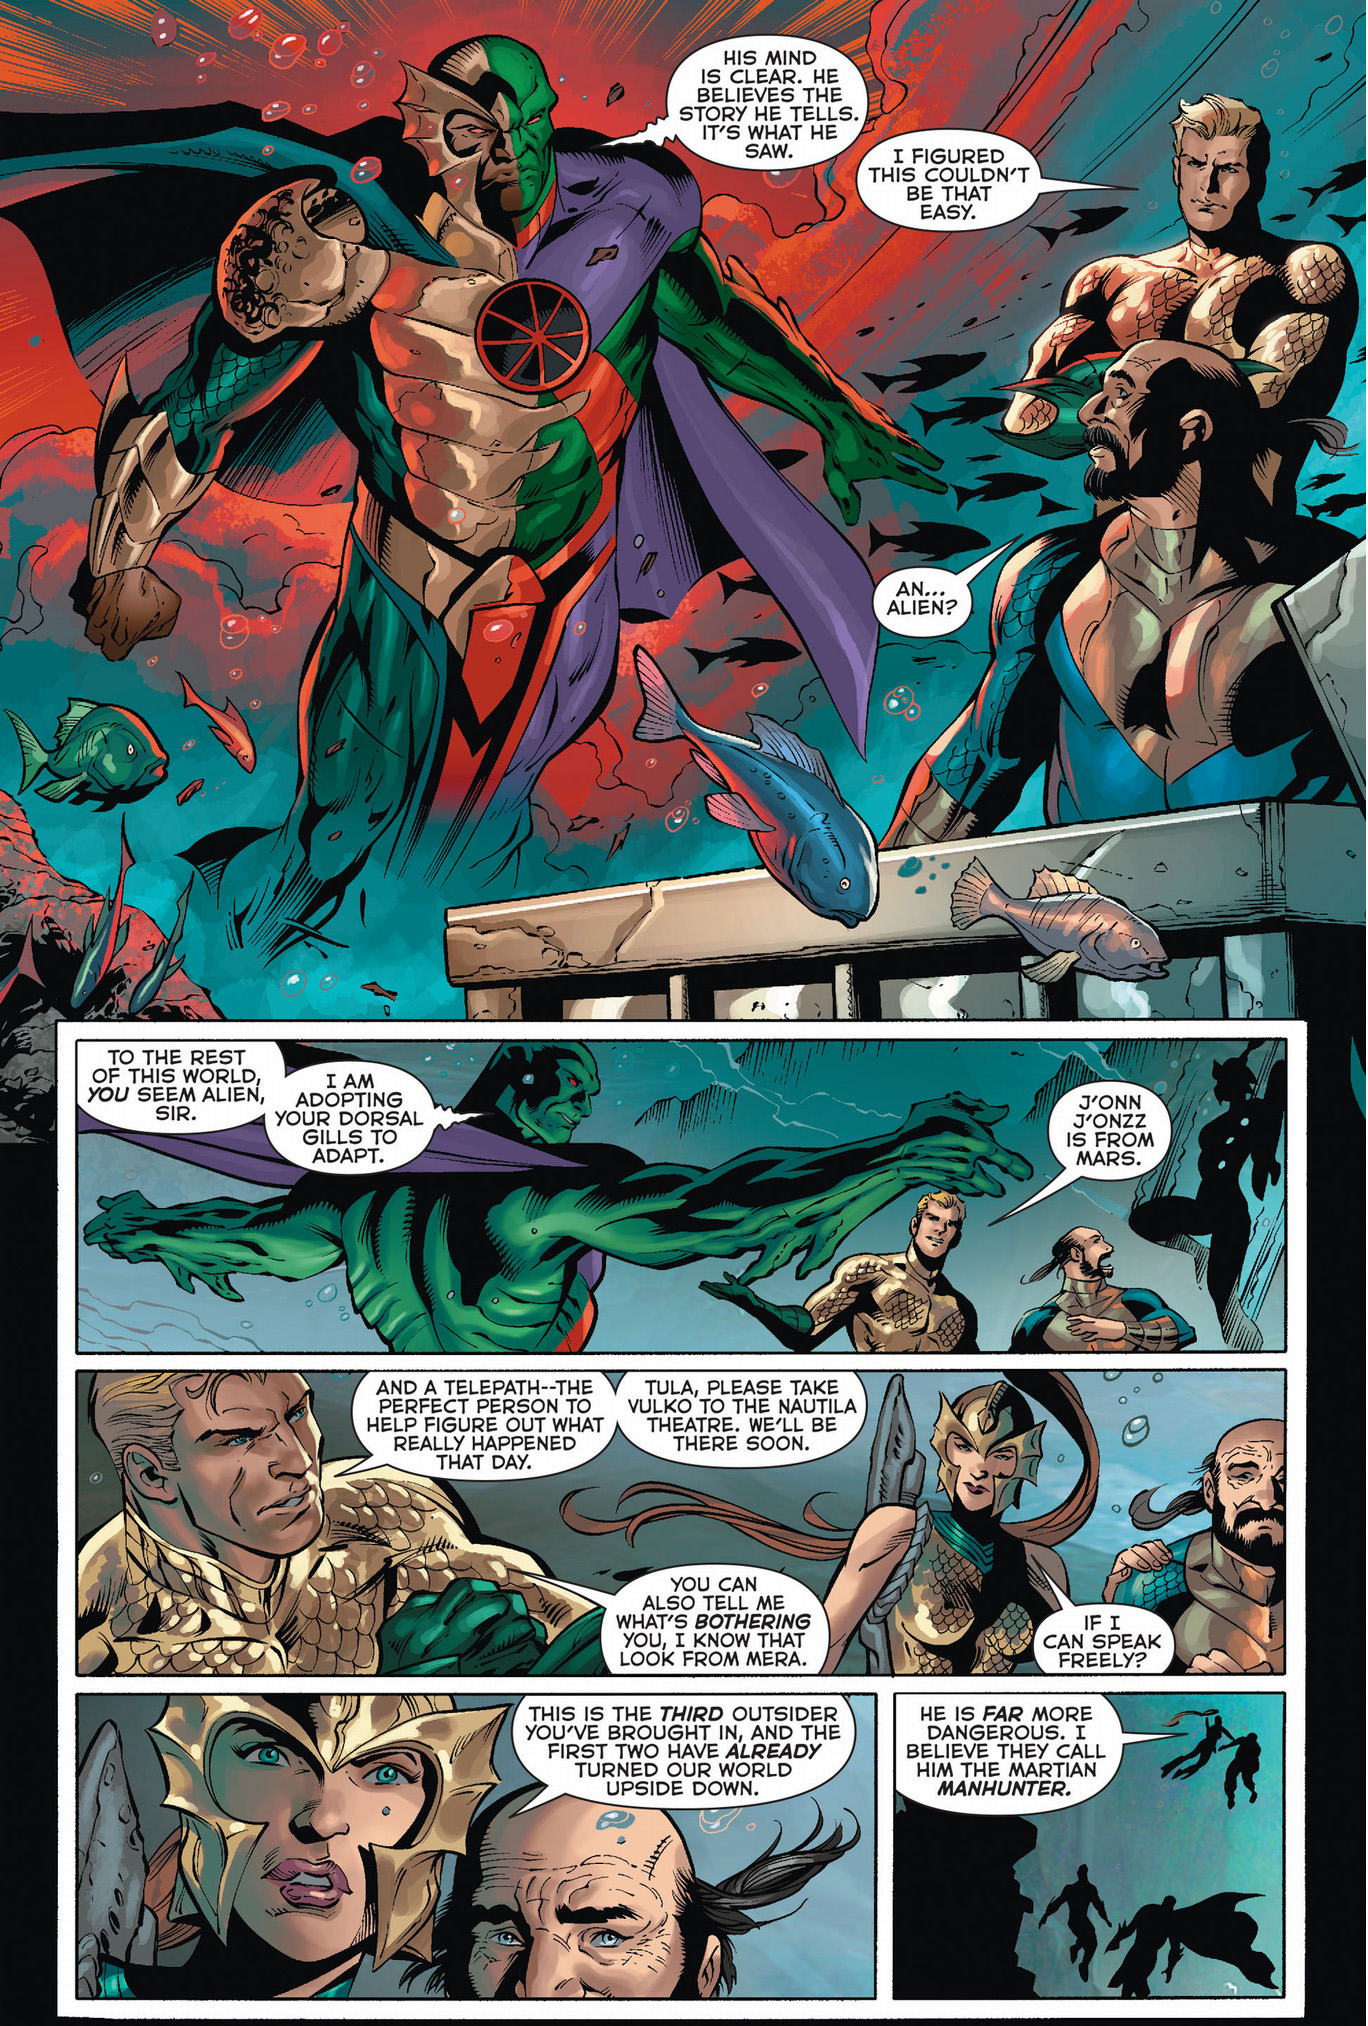 7 Muses Comics martian manhunter muses about being an atlantean – comicnewbies